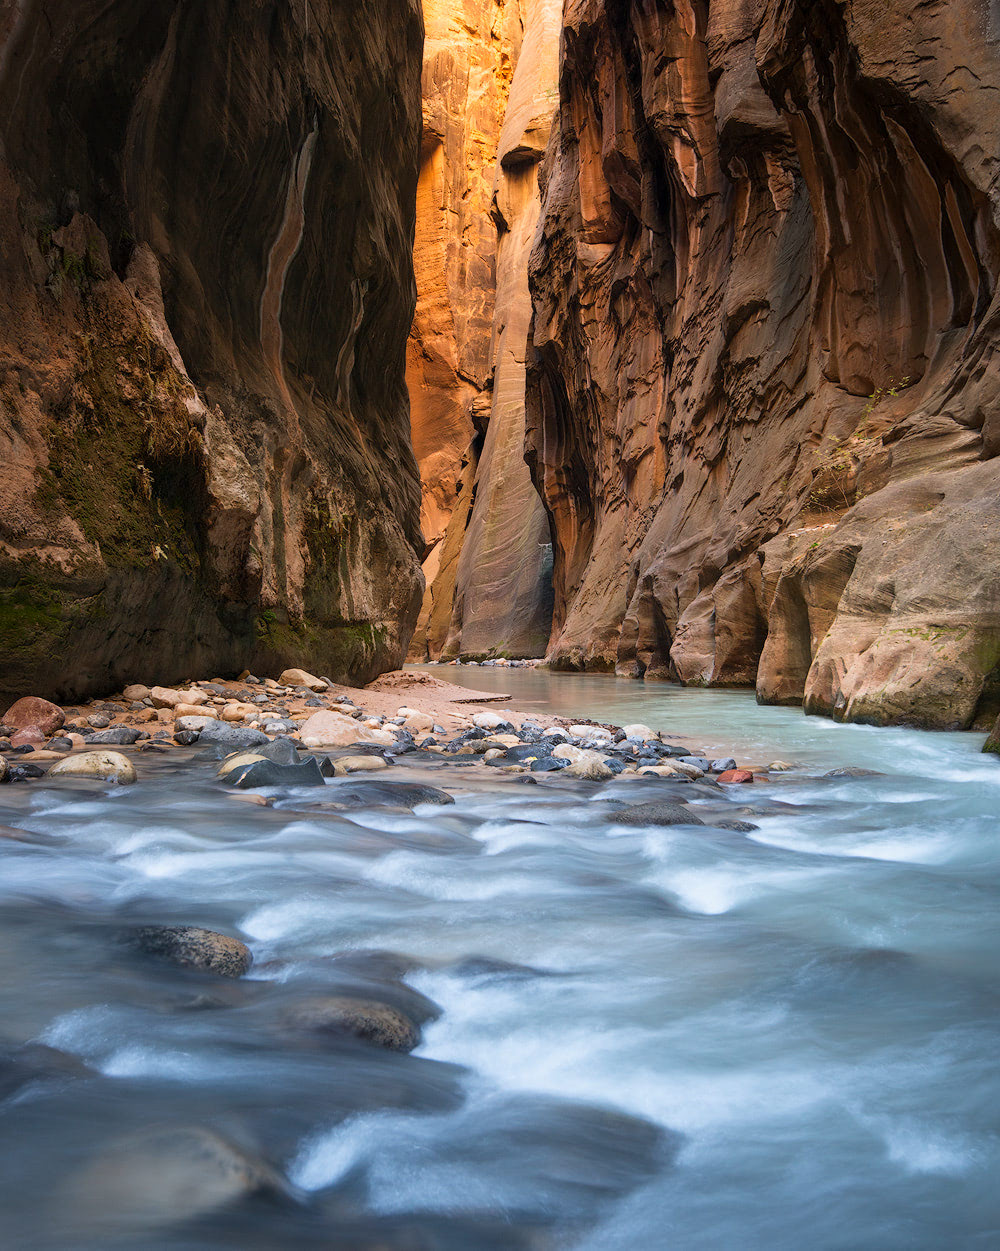 The Ultimate Guide to Exploring Zion National Park - The Narrows